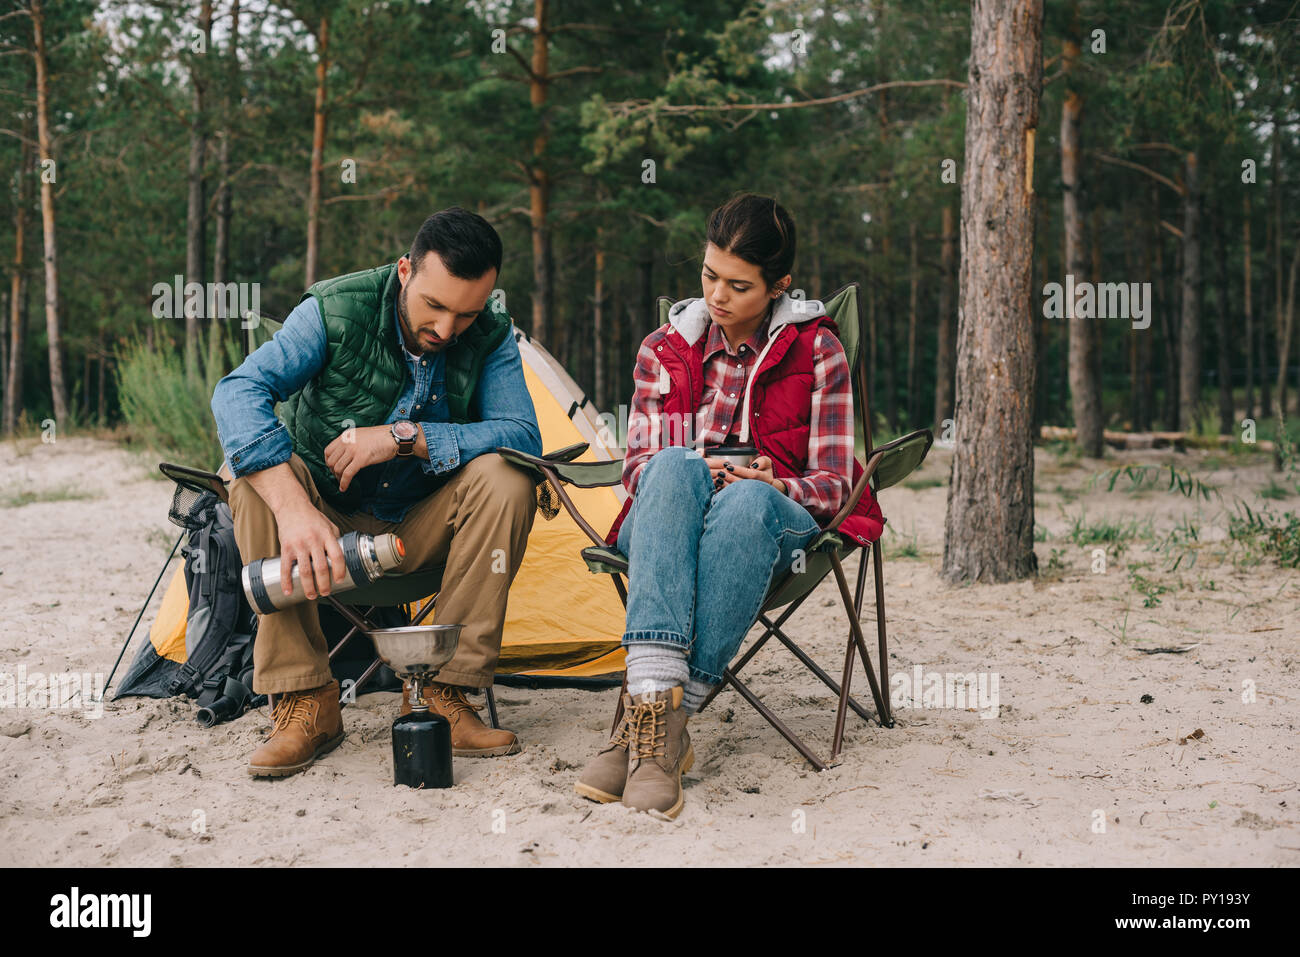 couple having camping on sandy beach with pine forest behind - Stock Image